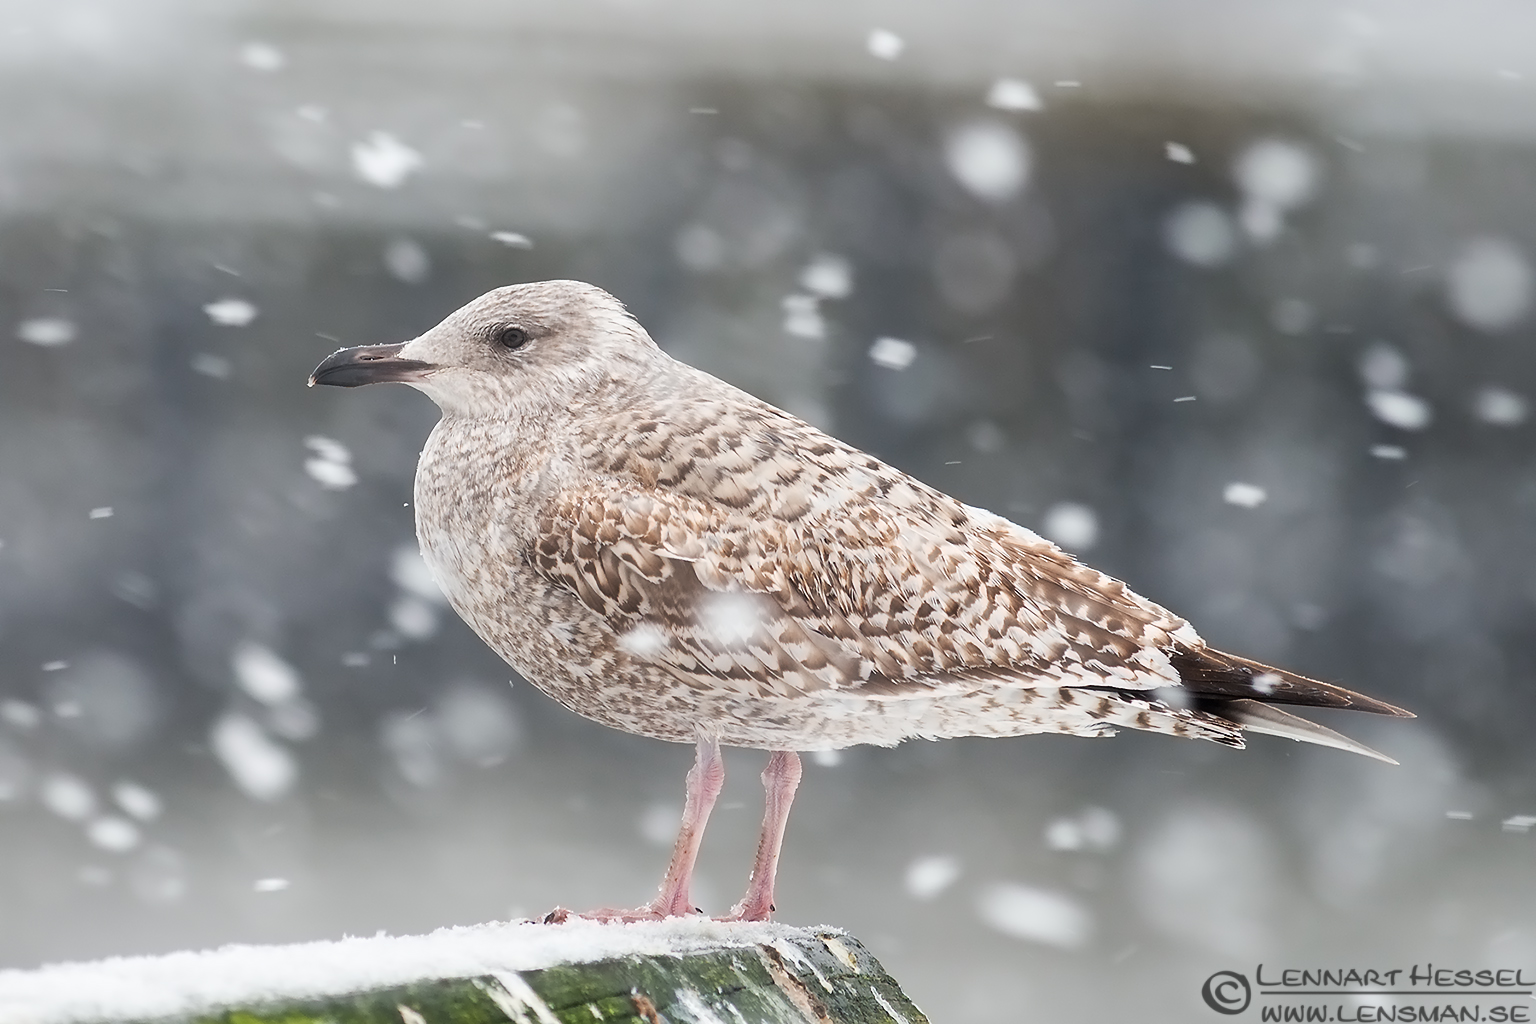 Juvenile European Herring Gull winter photo from the Fish Harbor